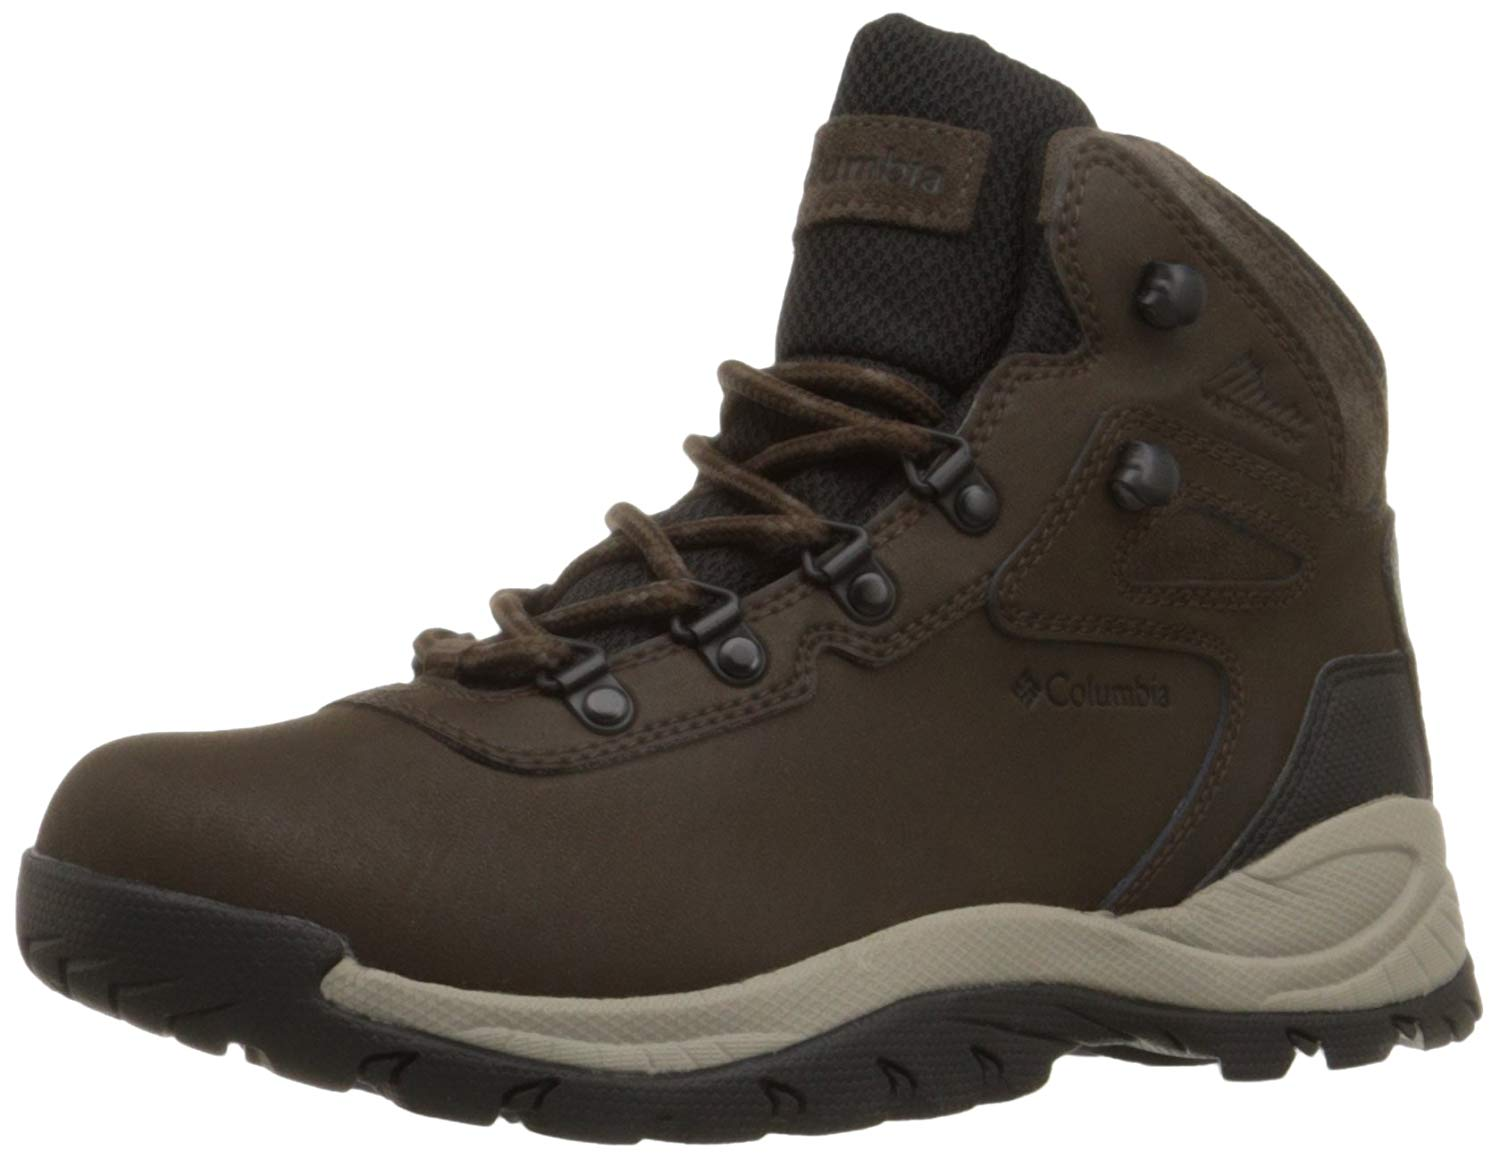 Top 10 Best Hiking Boots Under 100 For Men & Women 2020 Reviews 7